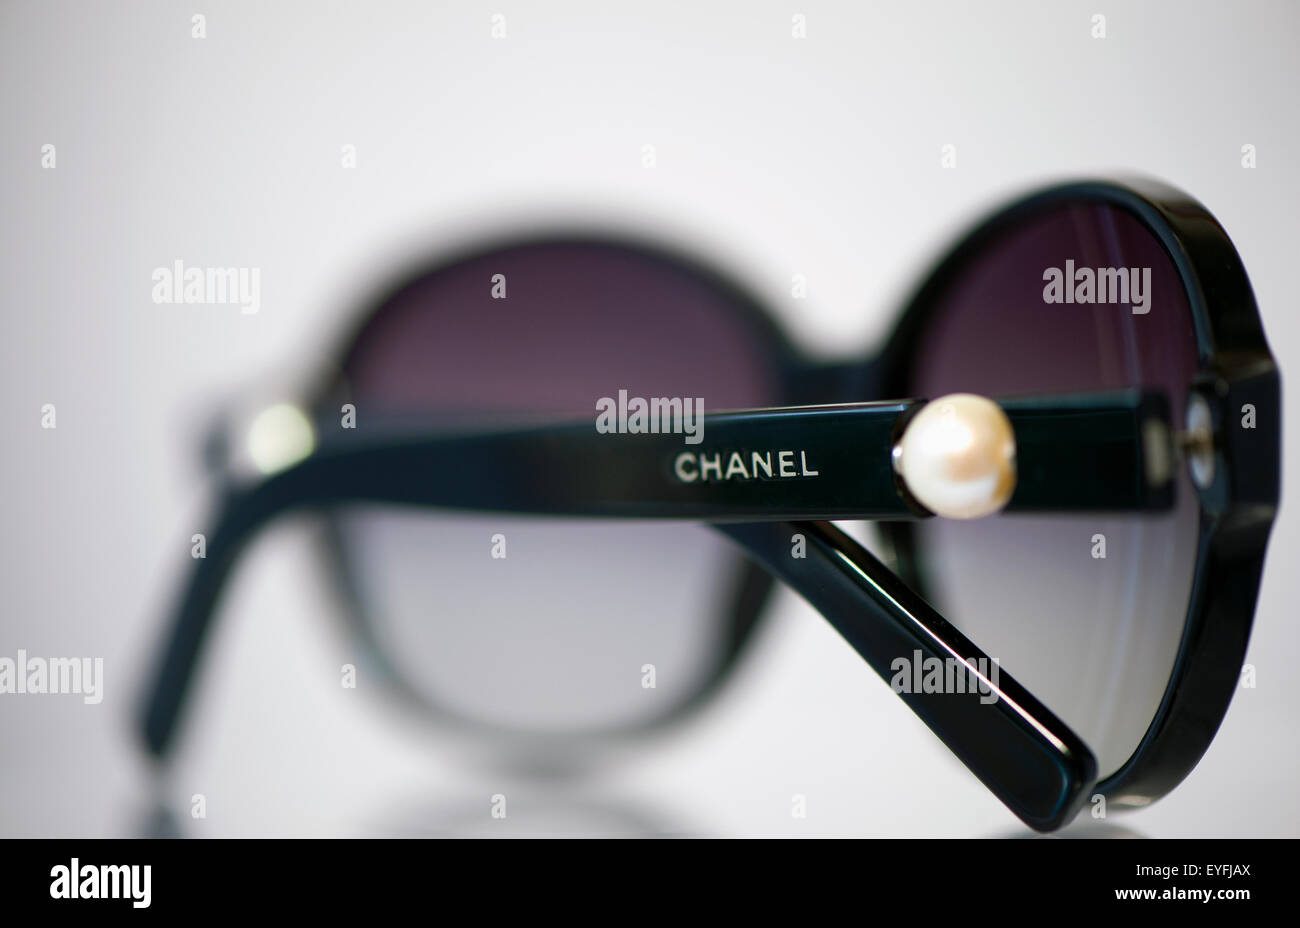 Chanel Sunglasses Stockfotos & Chanel Sunglasses Bilder - Alamy